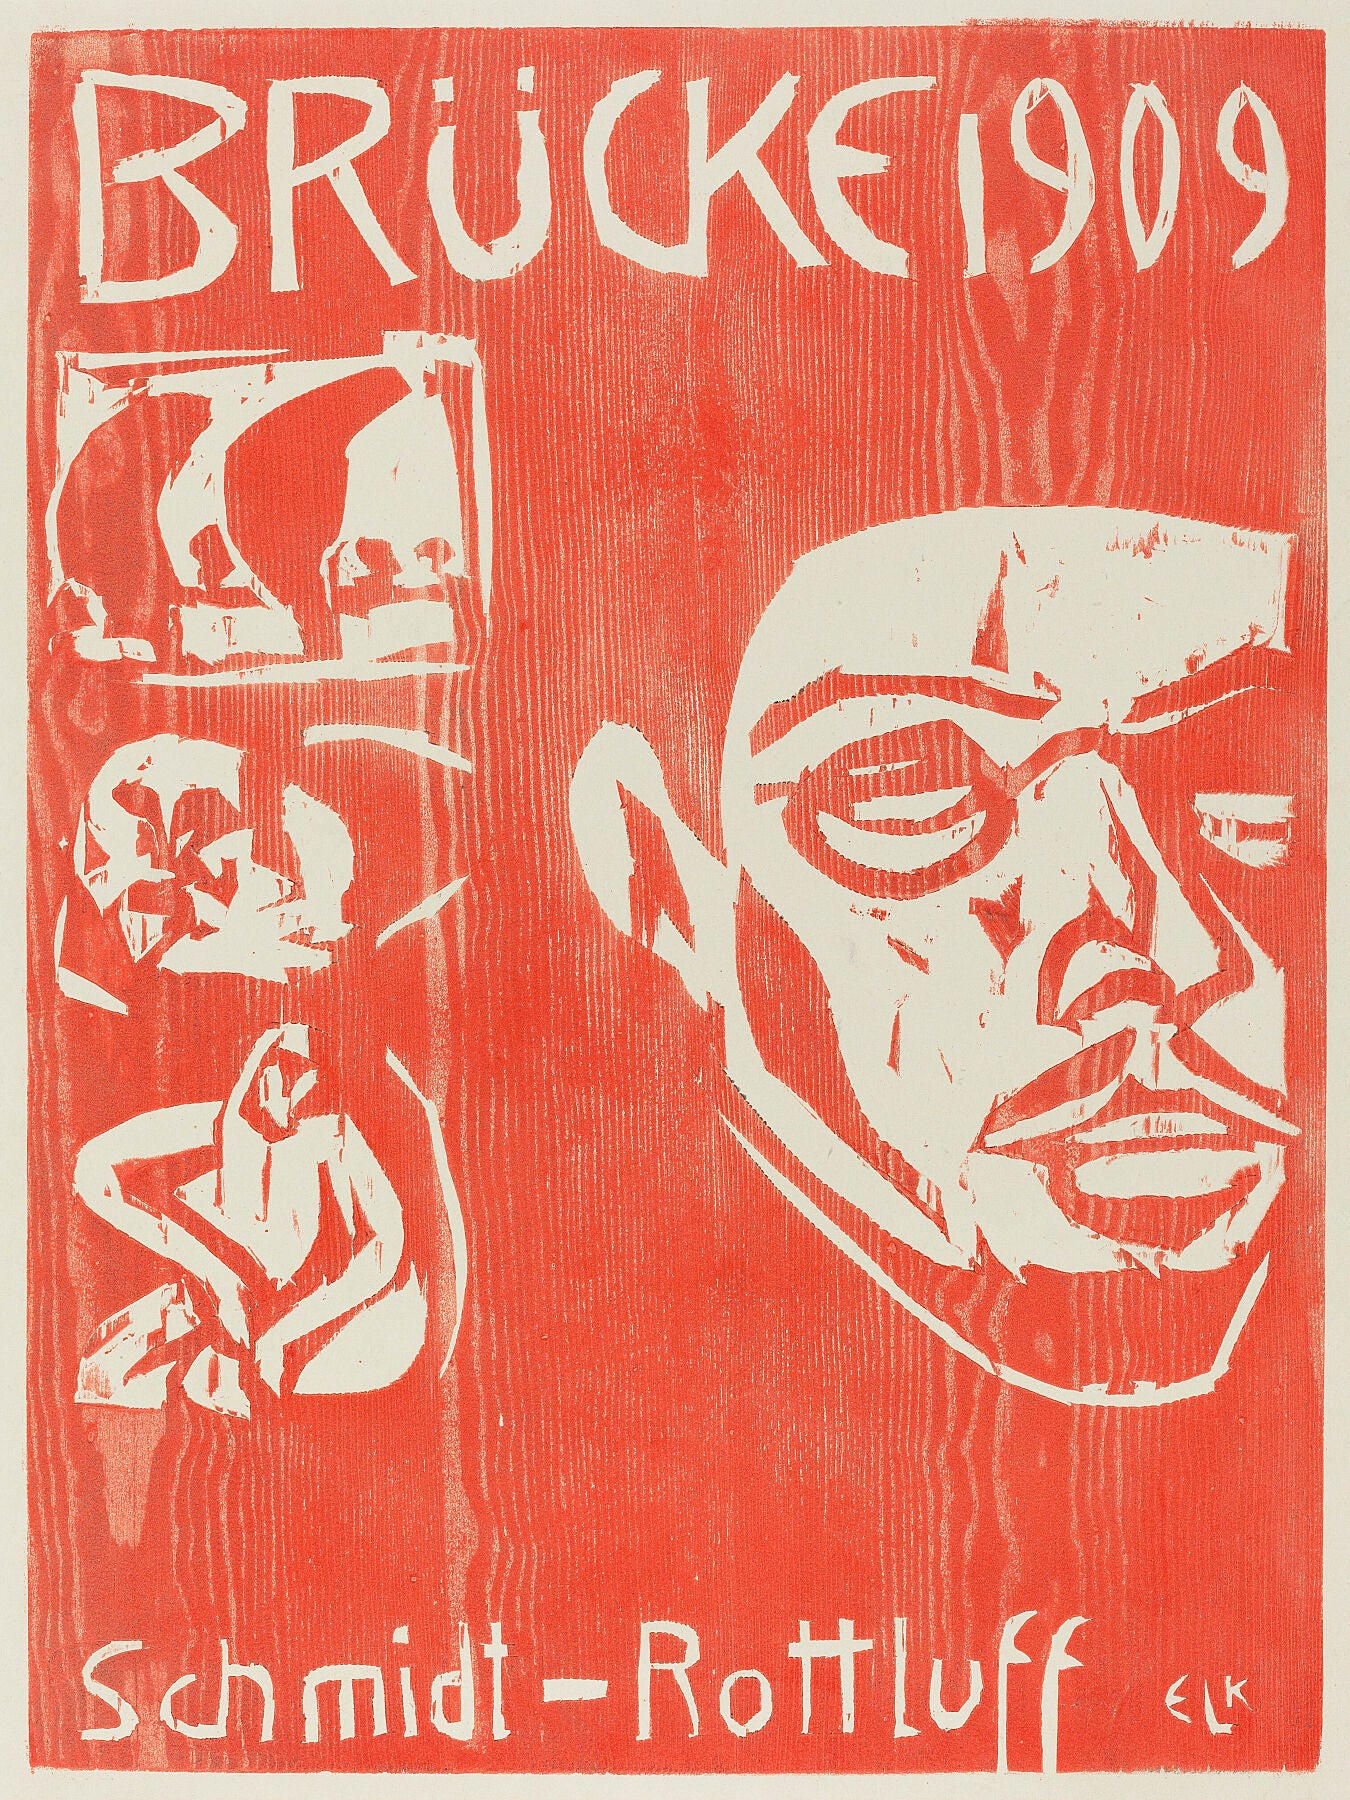 Cover of the Fourth Yearbook of the Artist Group the Brucke by Ernst Ludwig Kirchner - 1909